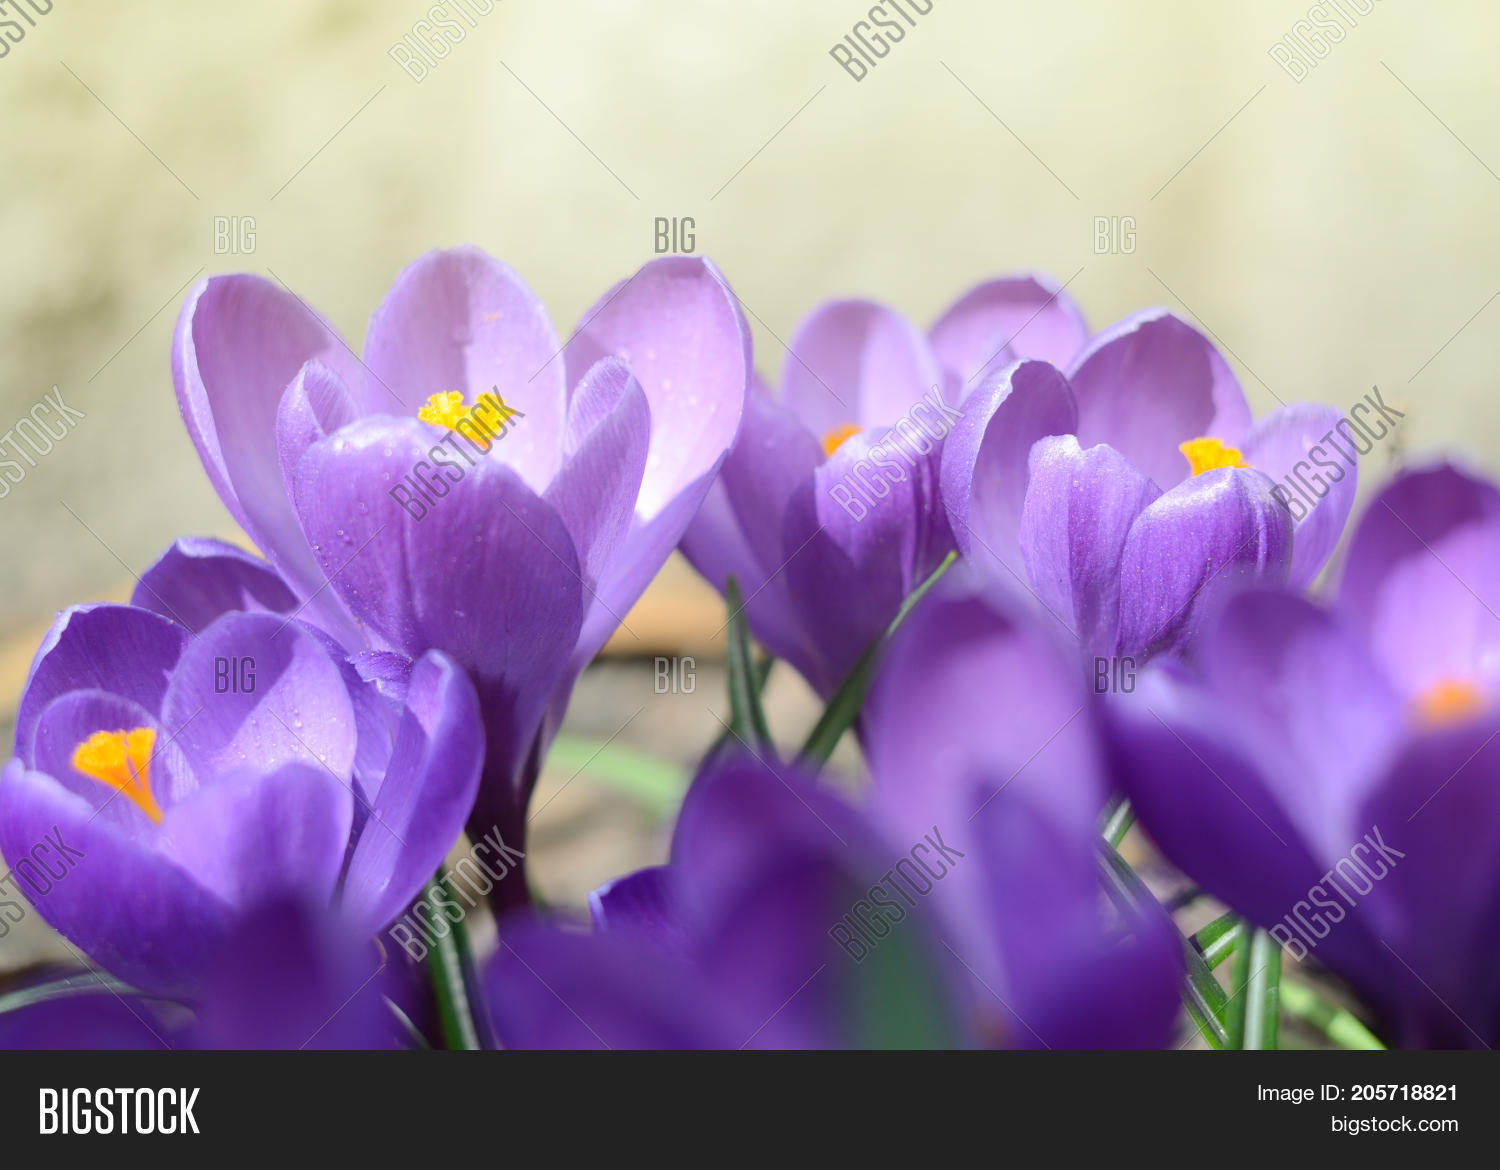 Beautiful first spring image photo free trial bigstock beautiful first spring flowers crocuses bloom under bright sunlight mightylinksfo